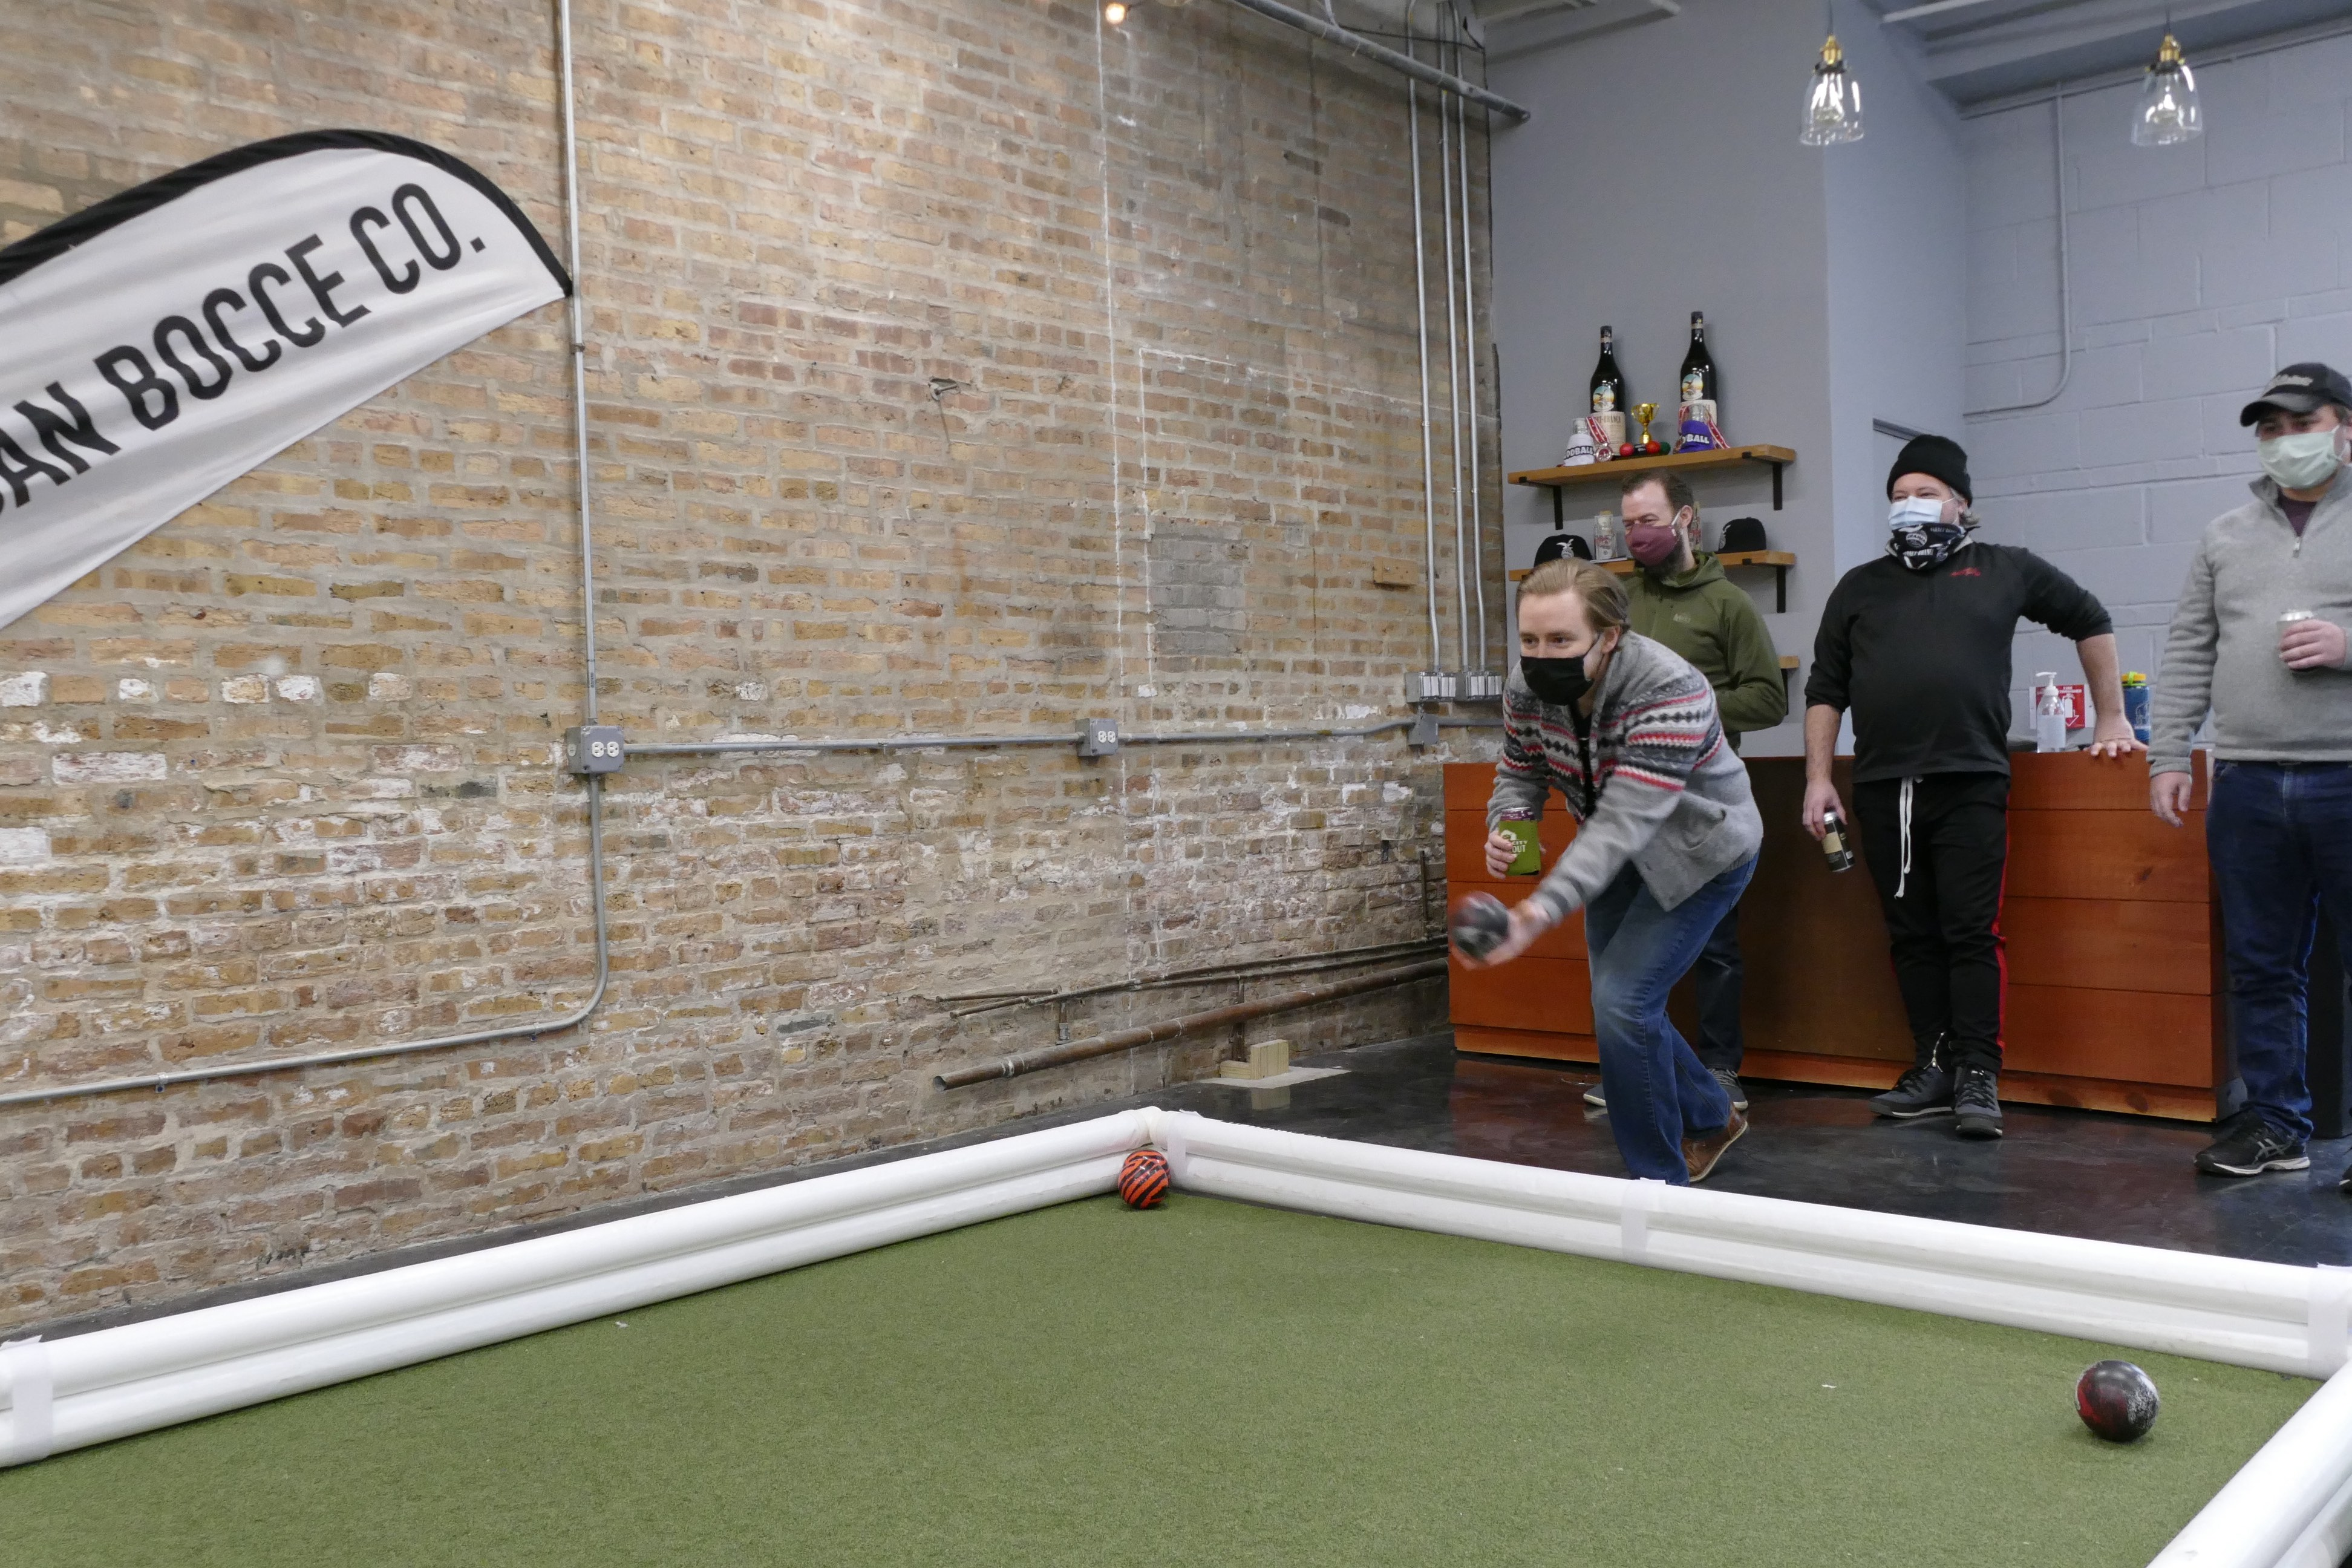 bocce ball player super martel bocce ball event space packaworld bocce court